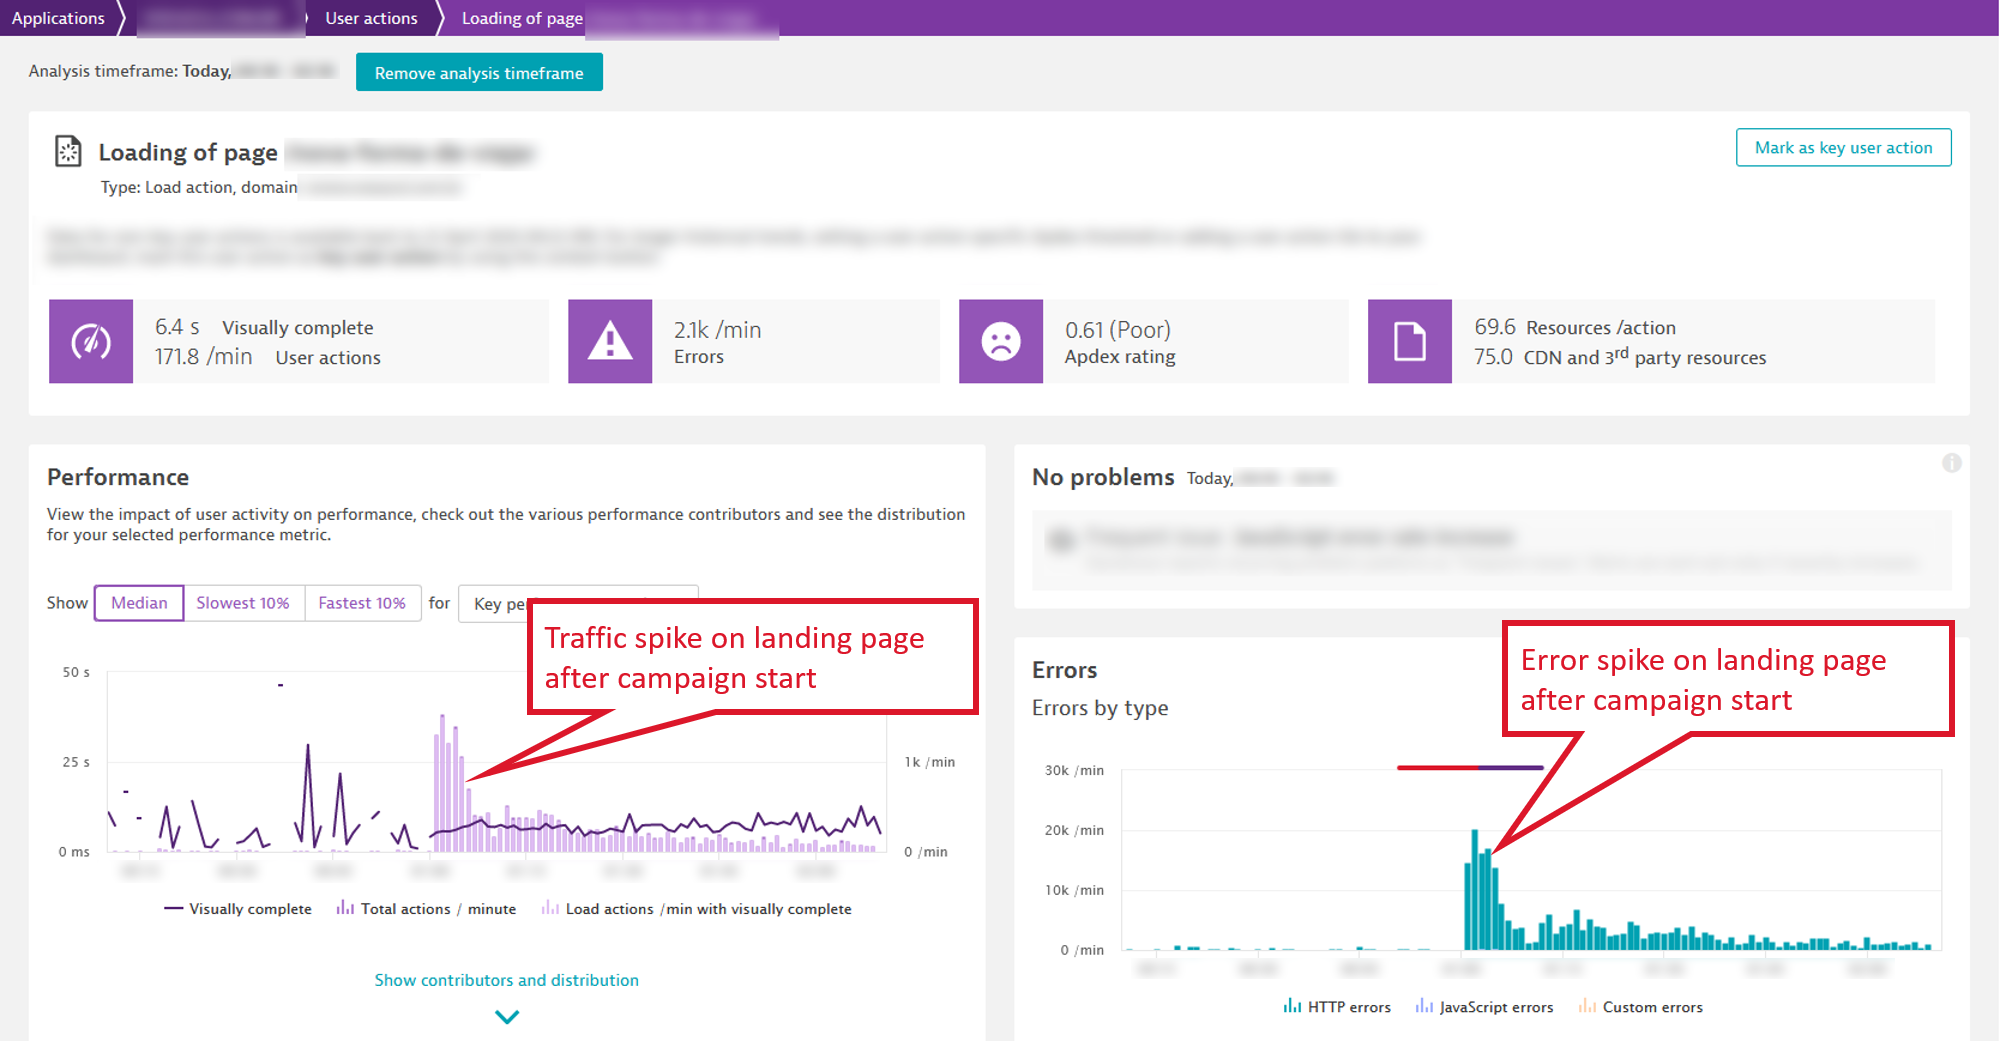 Traffic and error spike on landing page after campaign traffic hitting